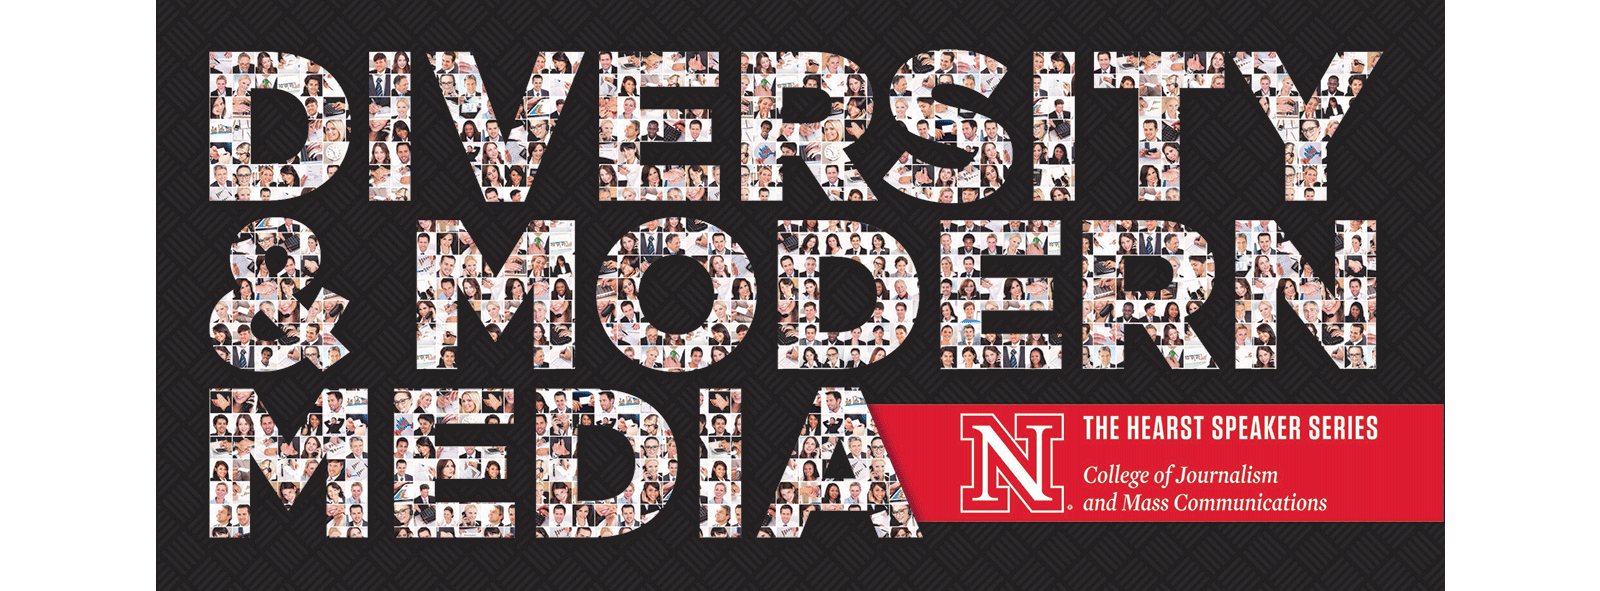 Diversity Series Graphic University of Nebraska–Lincoln College of Journalism and Mass Communications Presents: Diversity and Modern Media. Fine Print: The Hearst Speaker Series, College of Journalism and Mass Communications.